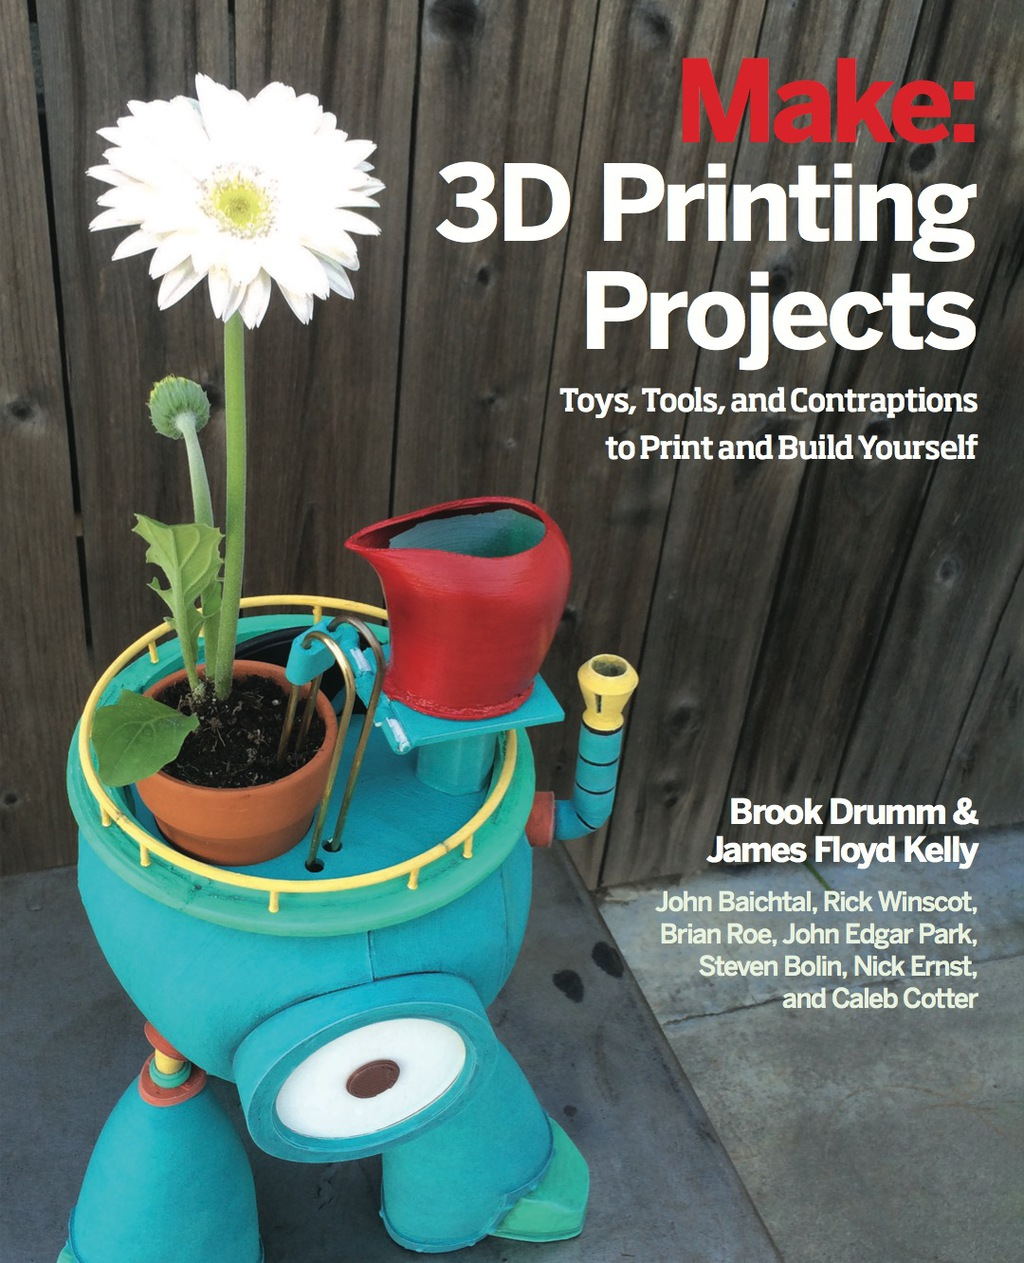 3D Printing Projects (eBook) (9781457187223) photo